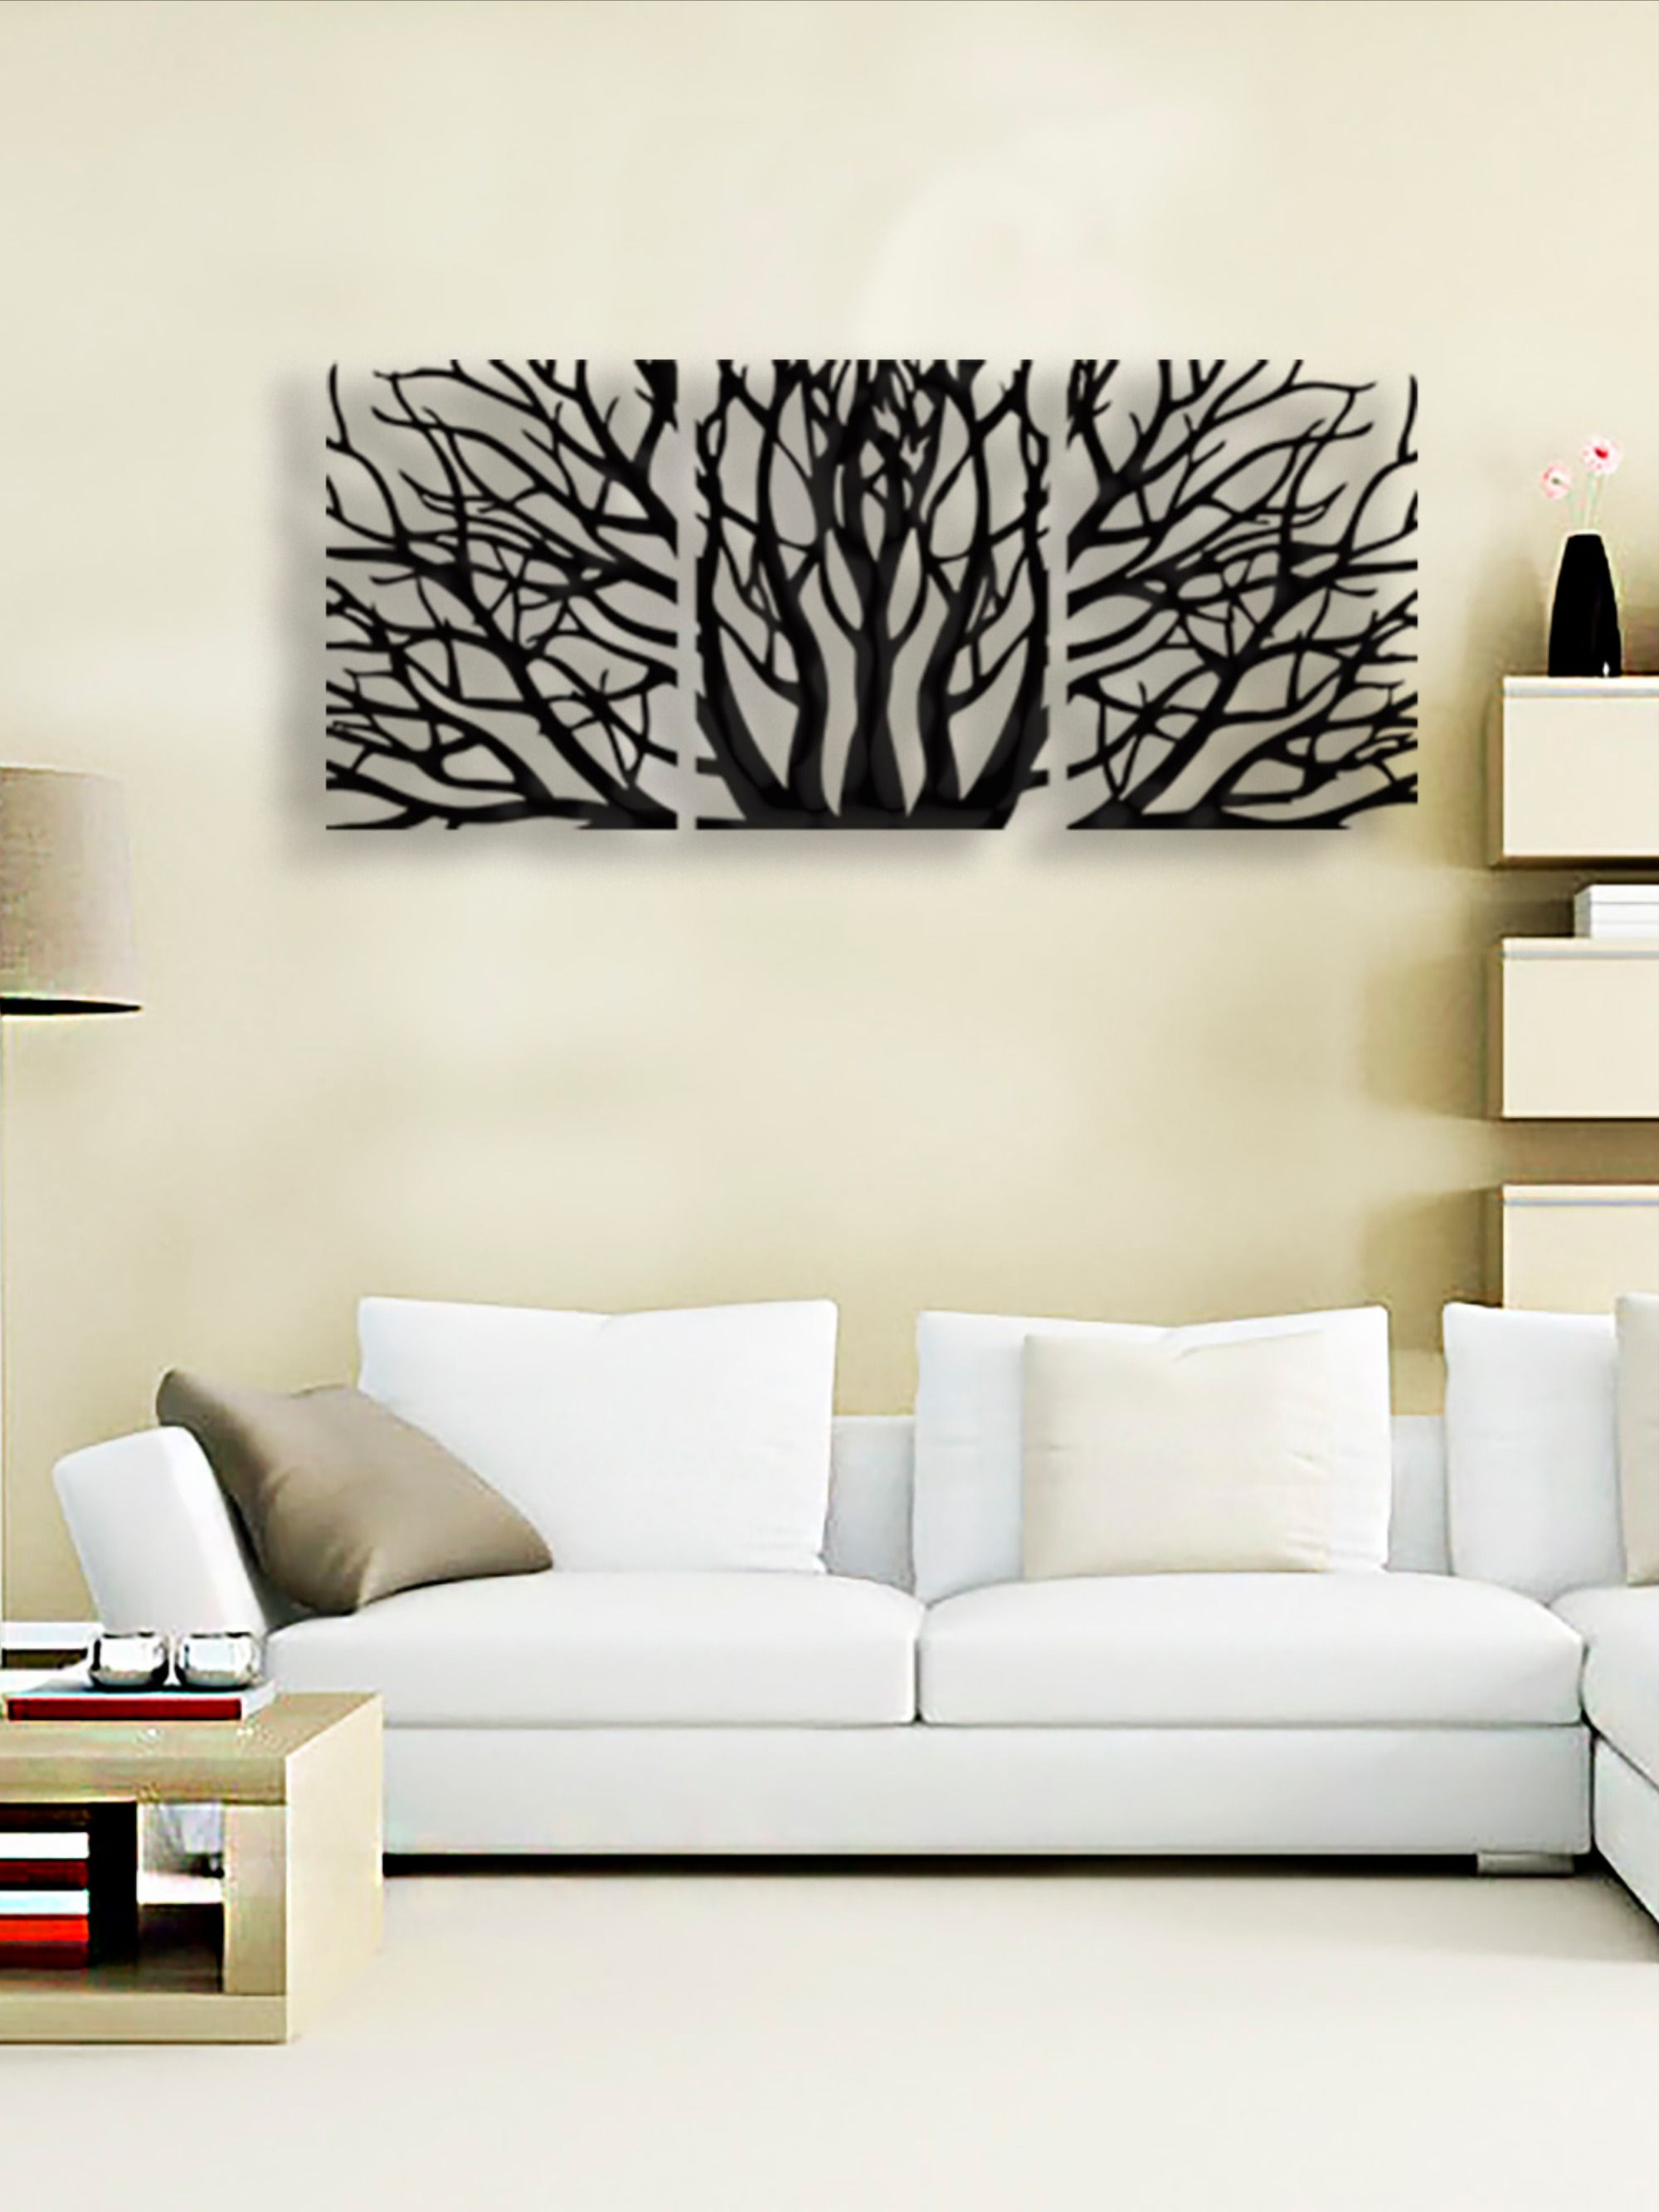 Metal Wall Tree Tree Branches 3 Piece Metal Wall Art Metal Etsy In 2020 Metal Wall Art Decor Tree Wall Loft Decor